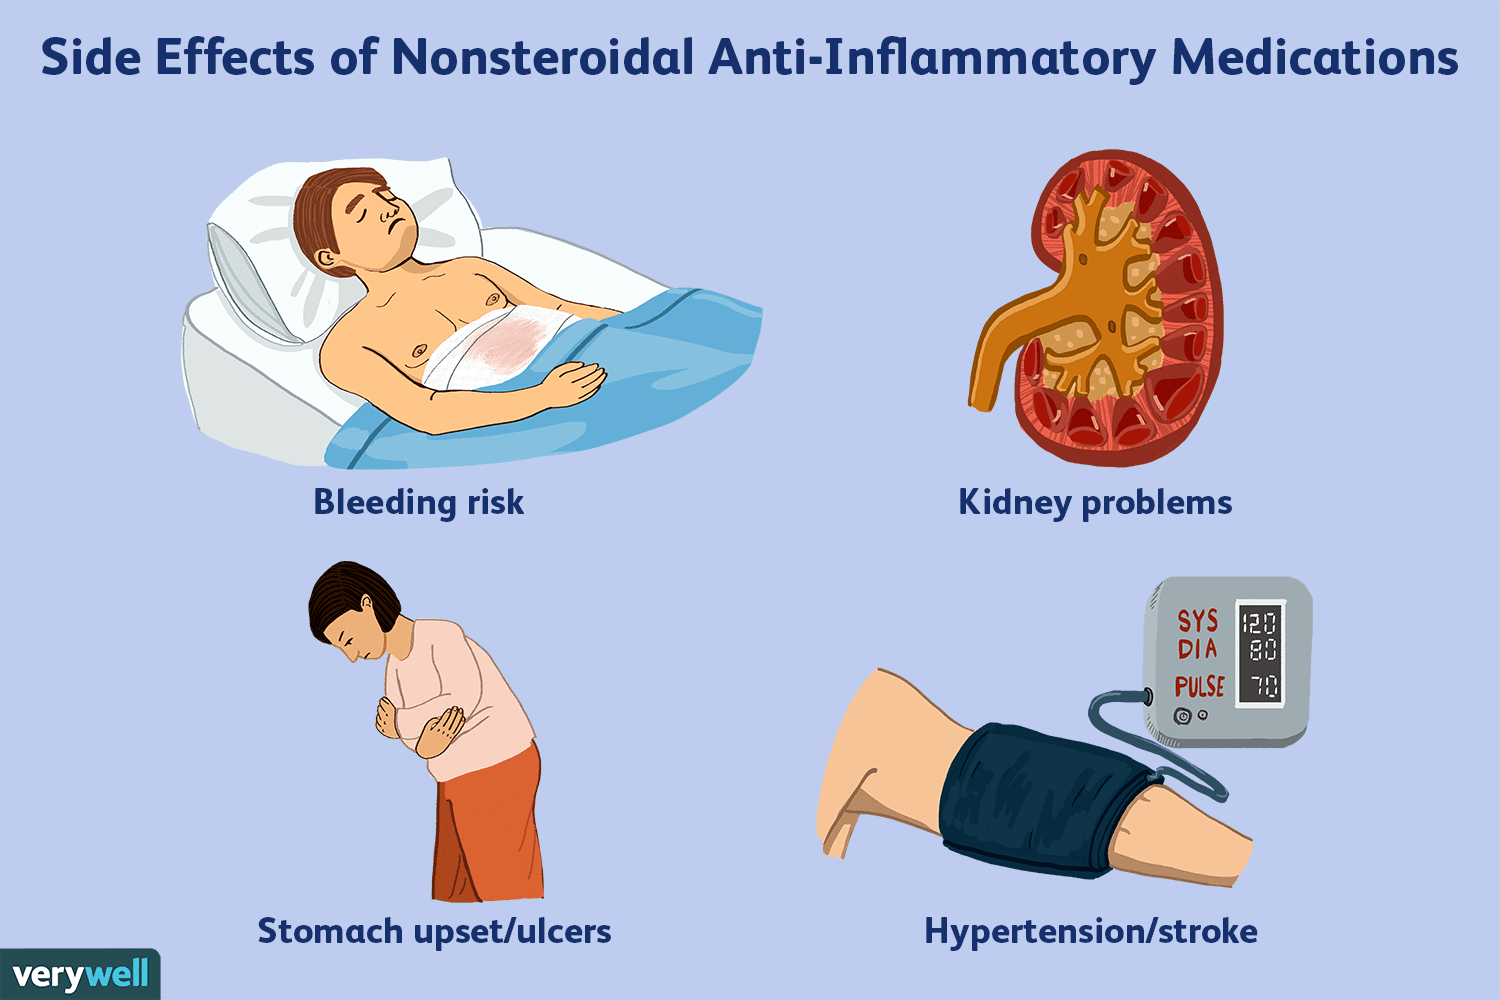 Side Effects of Nonsteroidal Anti-Inflammatory Medications